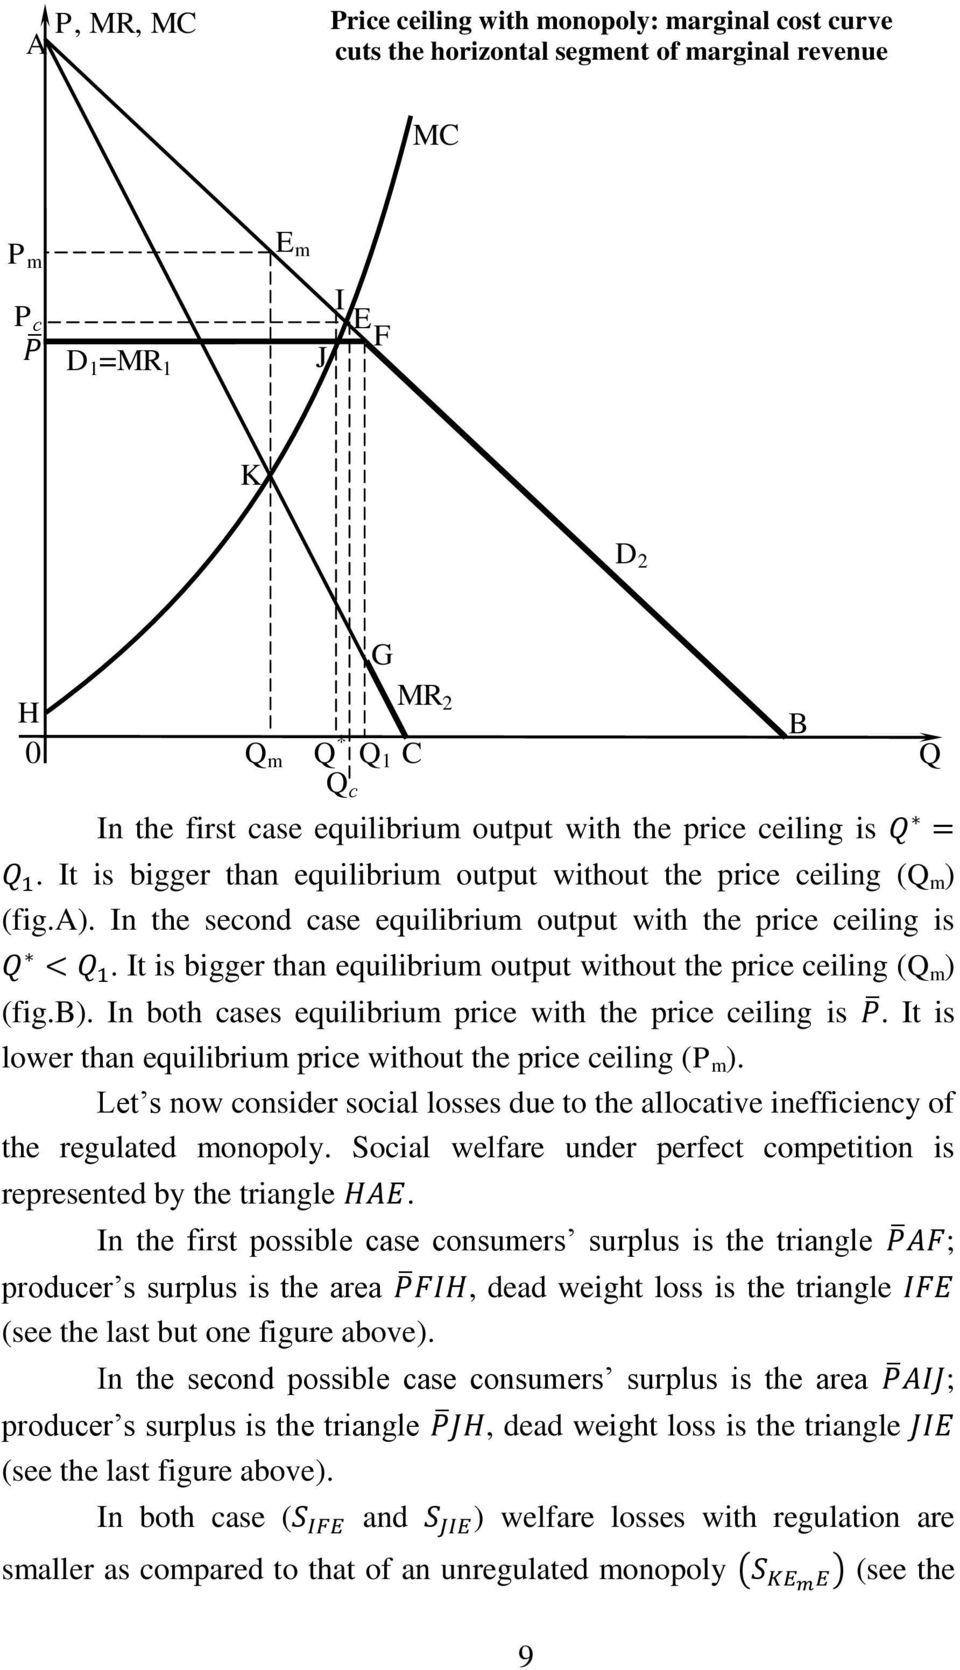 It is bigger than equilibrium output without the price ceiling ( m ) (fig.b). In both cases equilibrium price with the price ceiling is lower than equilibrium price without the price ceiling (P m ).